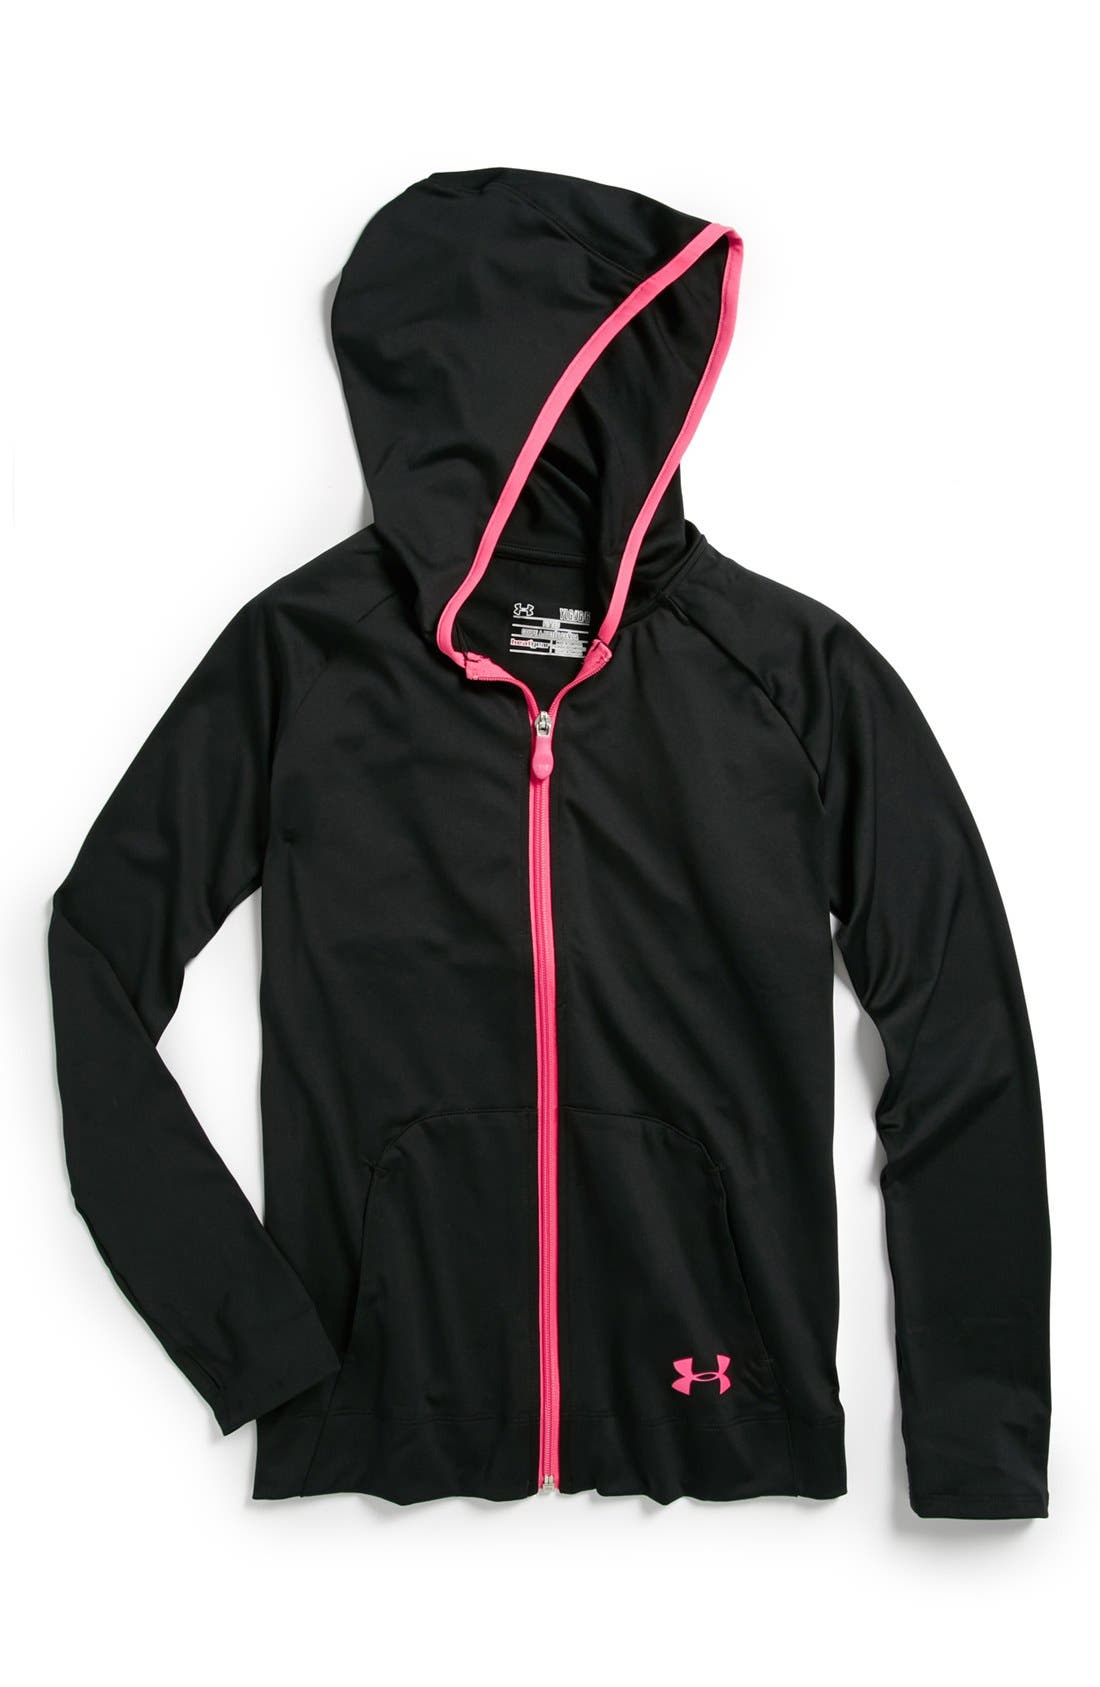 Alternate Image 1 Selected - Under Armour 'Victory' Jacket (Big Girls)